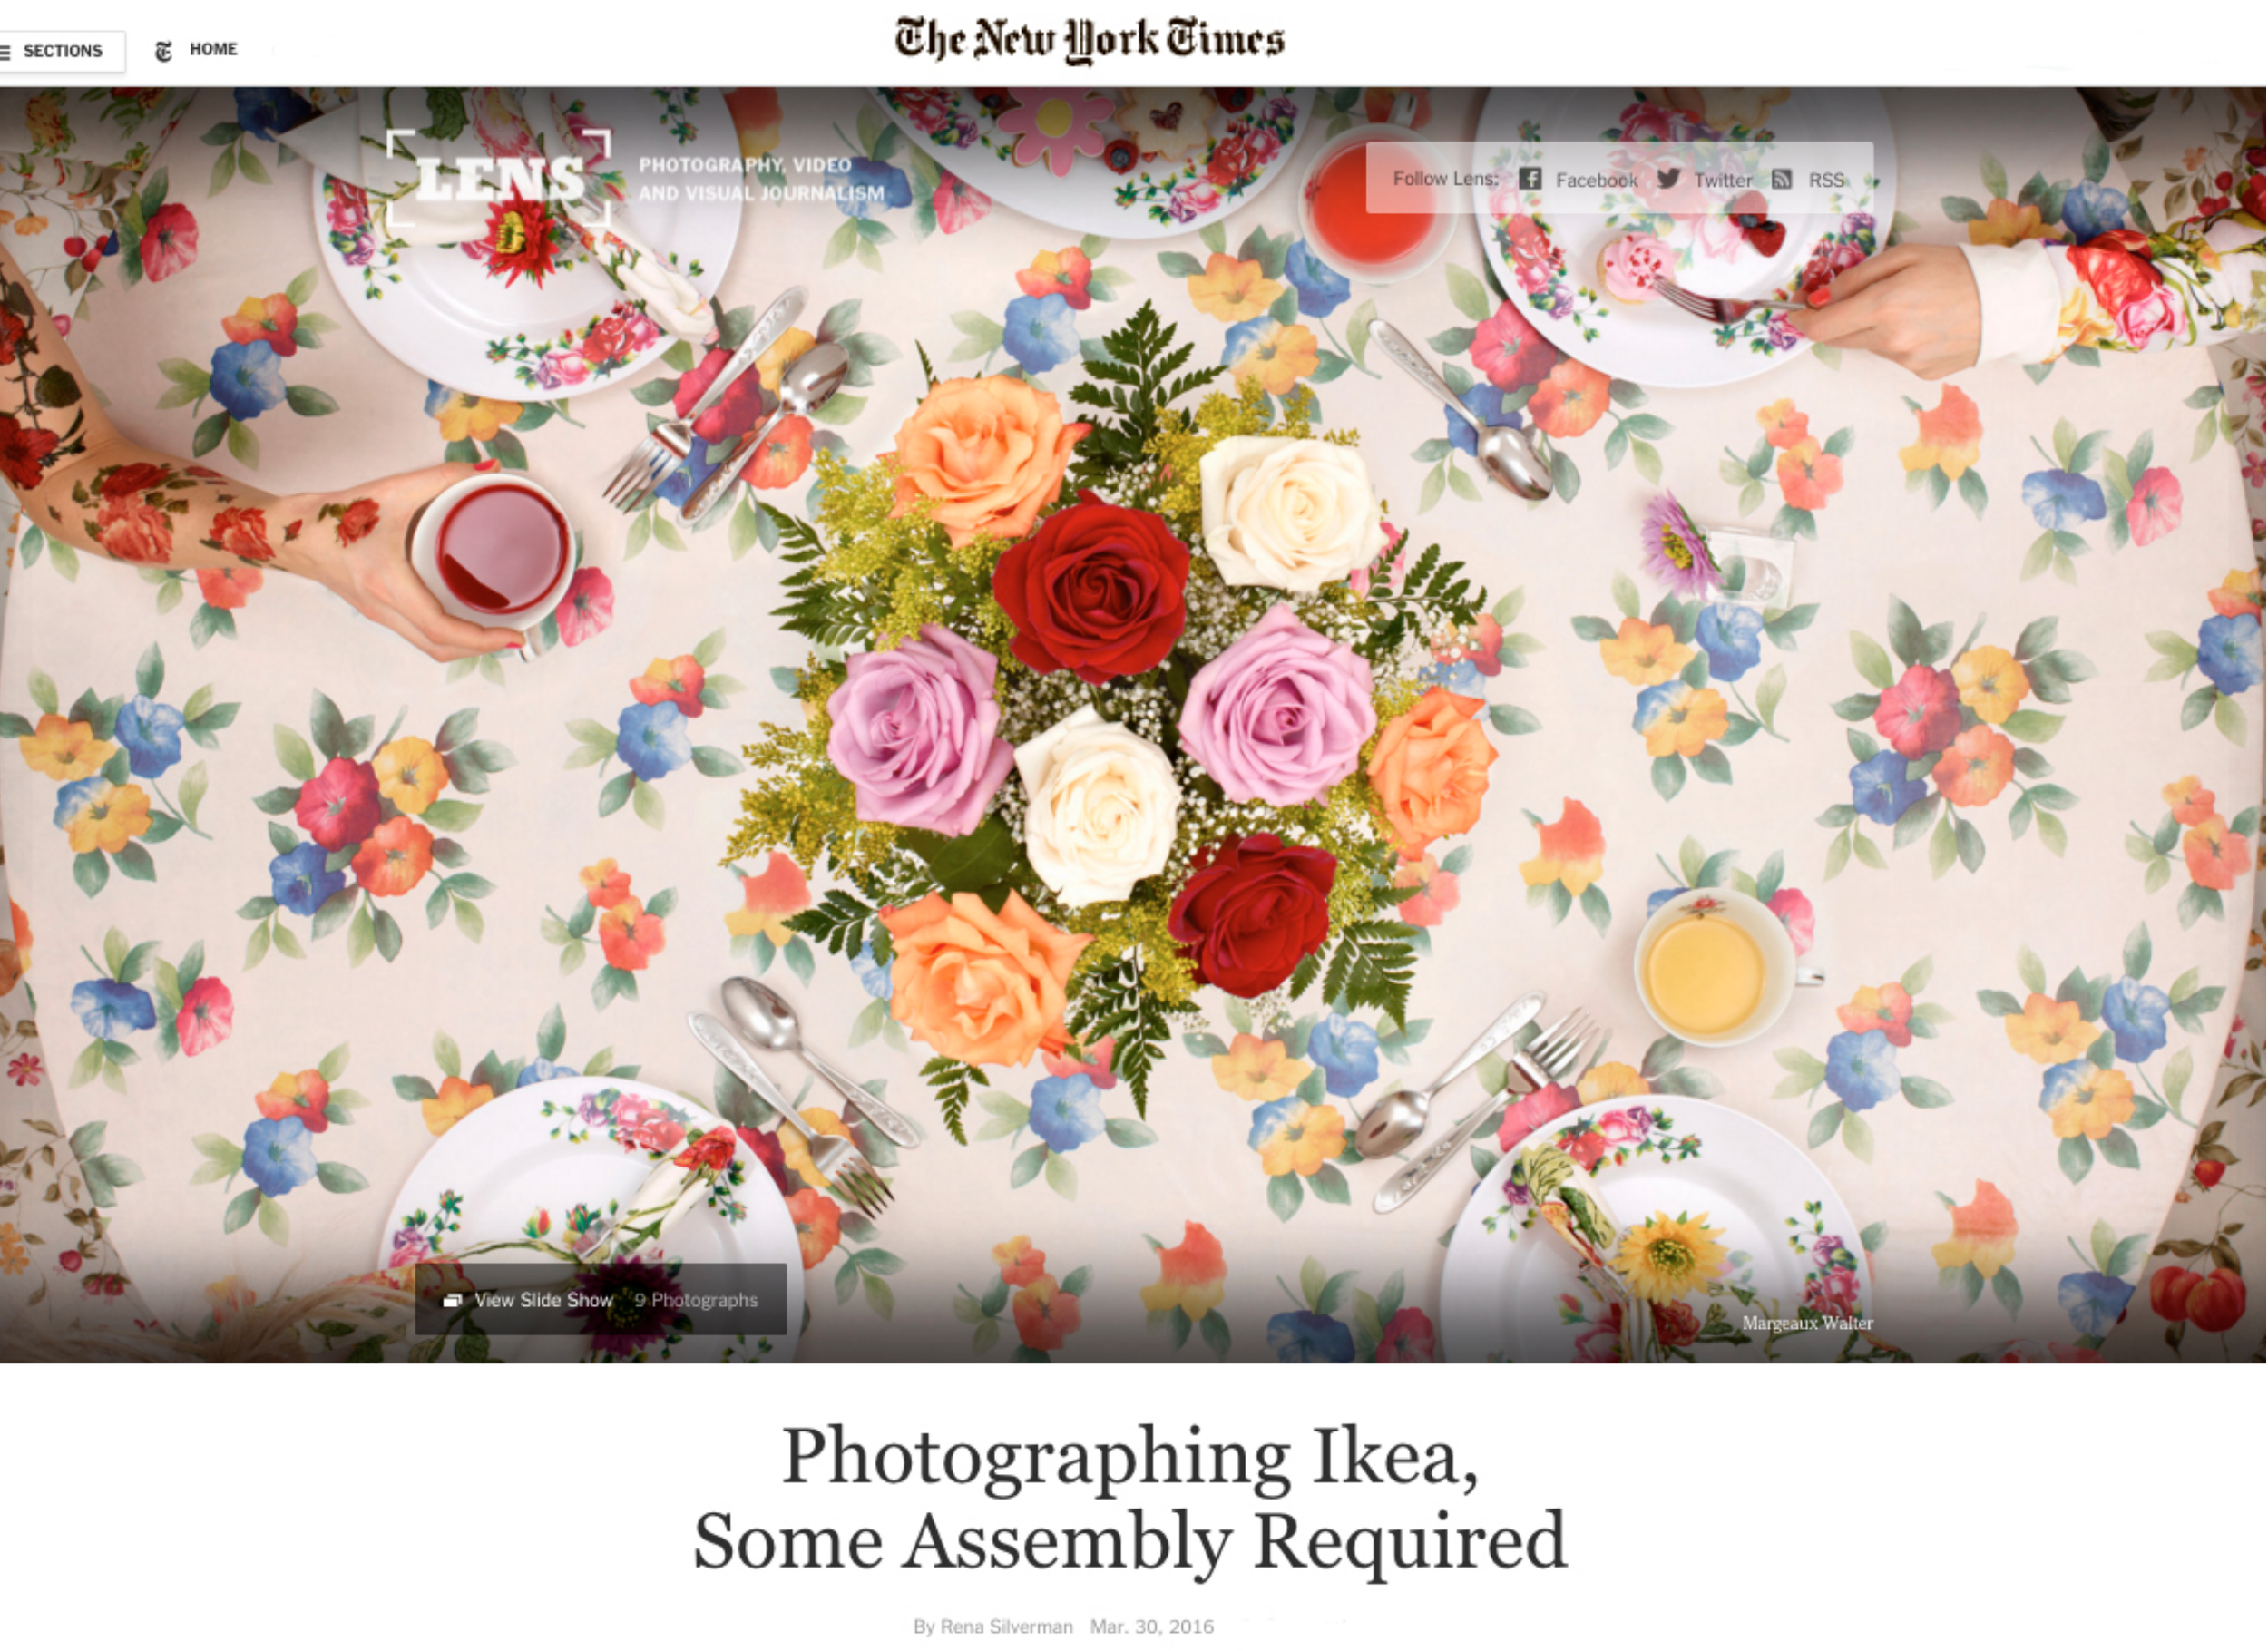 - NYTimes Feature: http://lens.blogs.nytimes.com